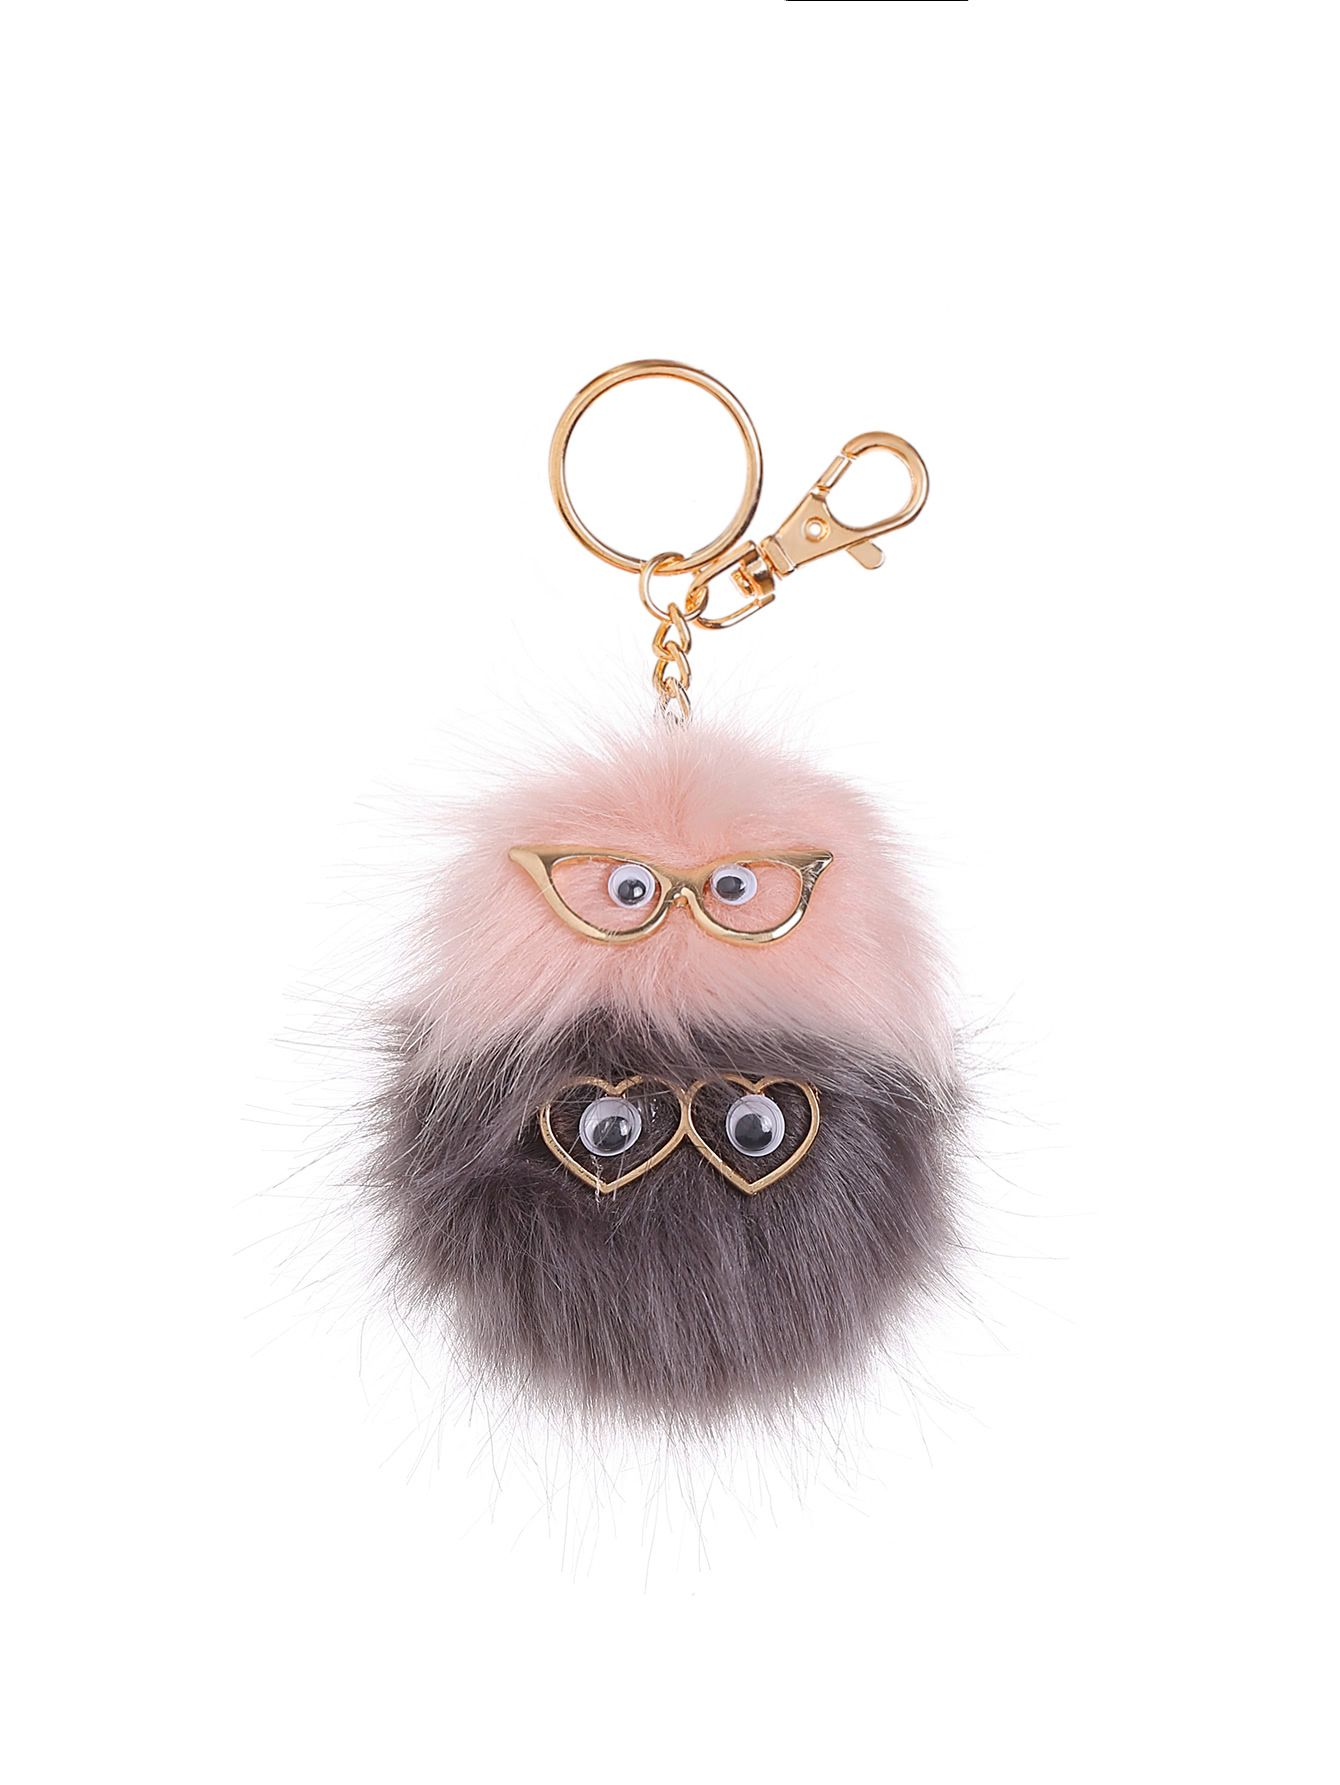 d2c35b04ed Shop Owl Design Keychain With Pom Pom online. SheIn offers Owl Design  Keychain With Pom Pom & more to fit your fashionable needs.